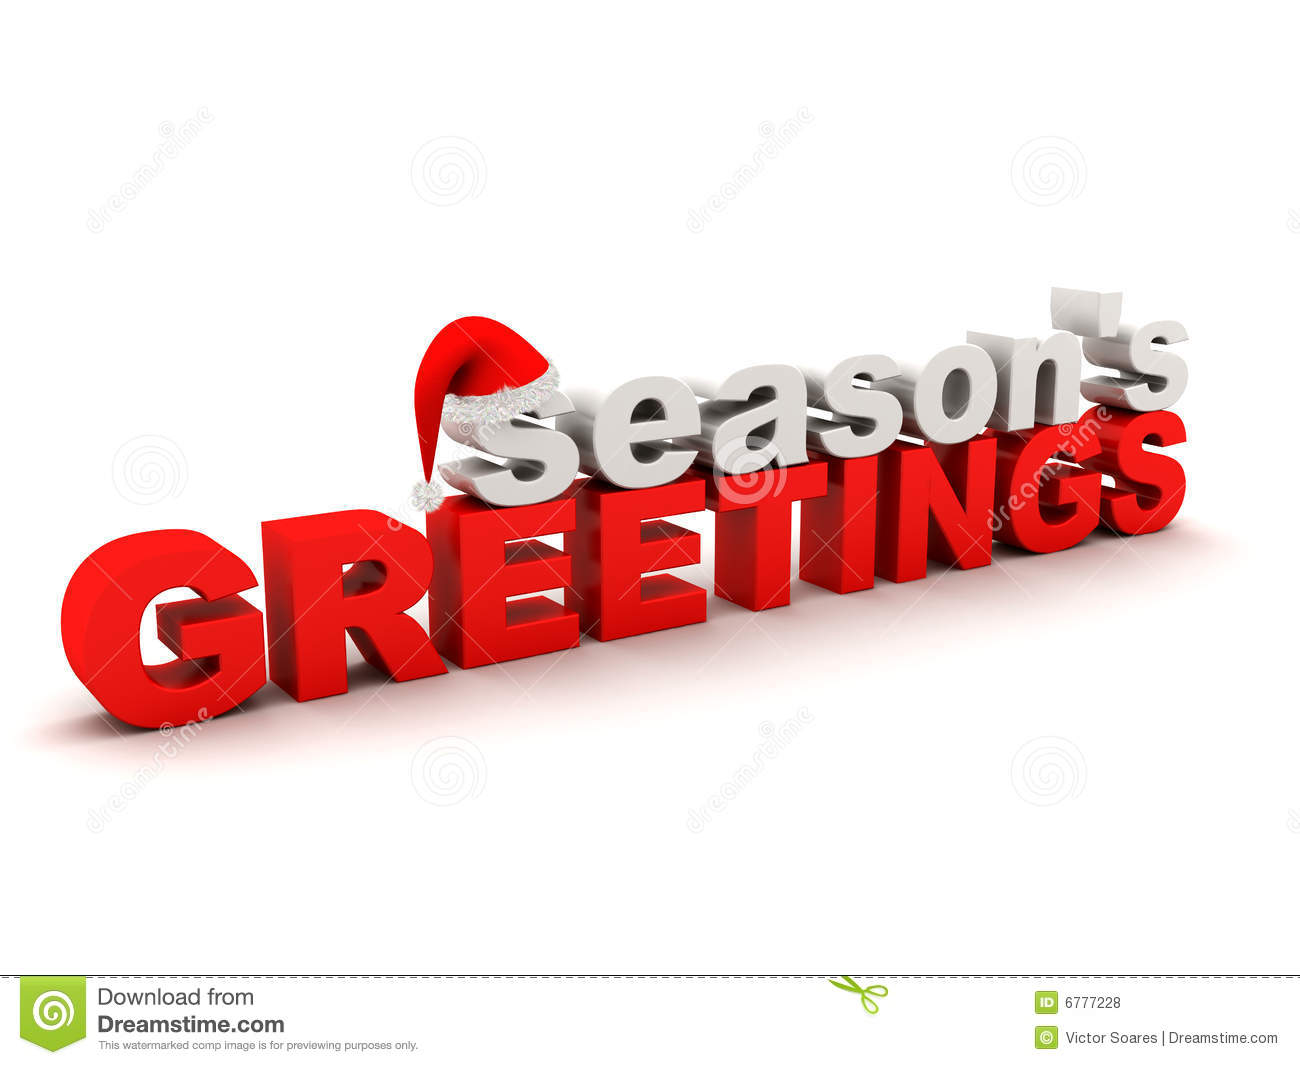 Seasons greetings text stock illustration illustration of holidays seasons greetings text m4hsunfo